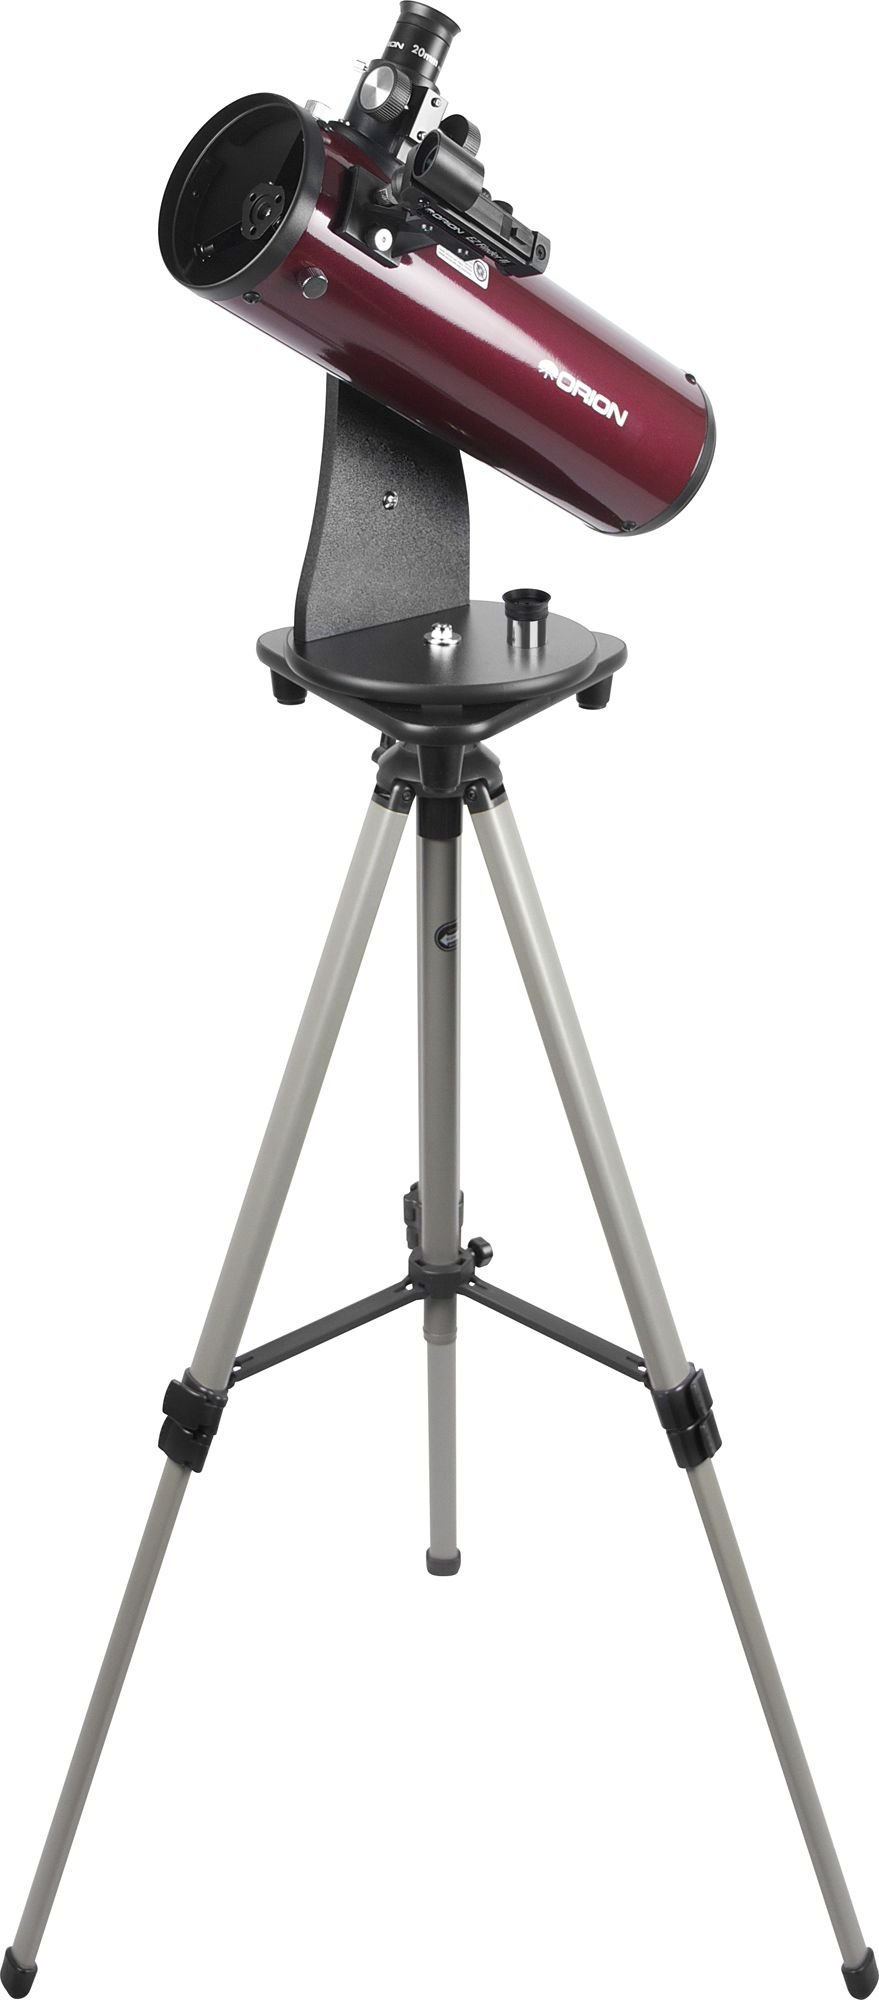 Orion SkyScanner 100mm Reflector Telescope and Tripod Bundle by Orion